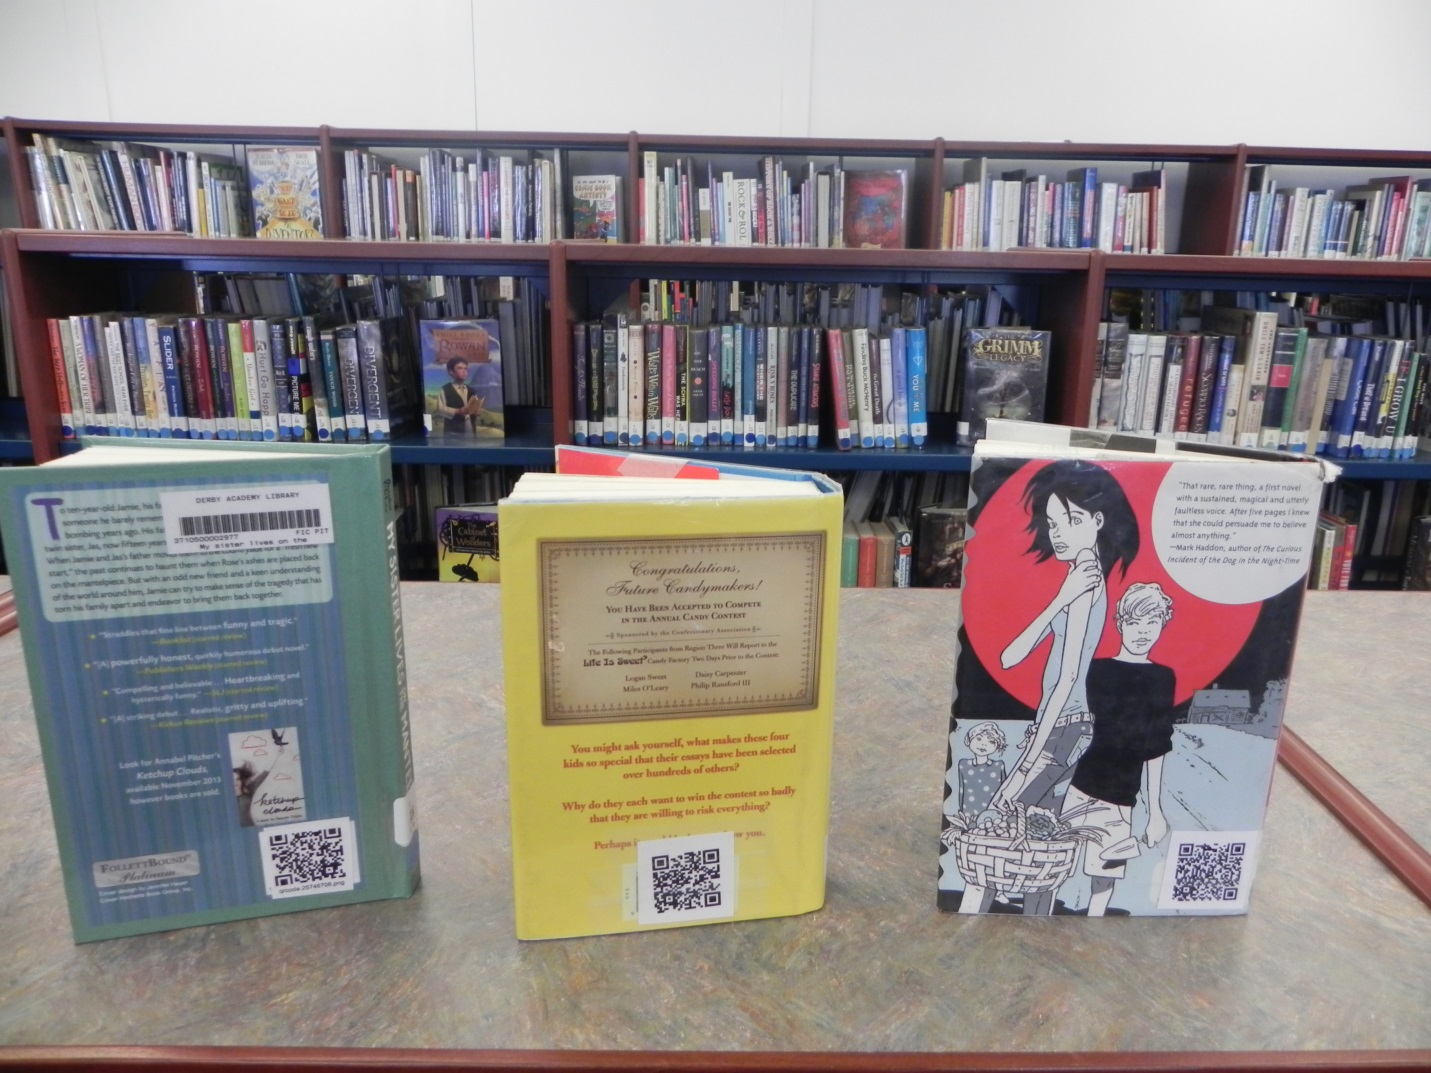 Using qr codes to promote your library novelist ebscohost mystery qr codes fandeluxe Image collections